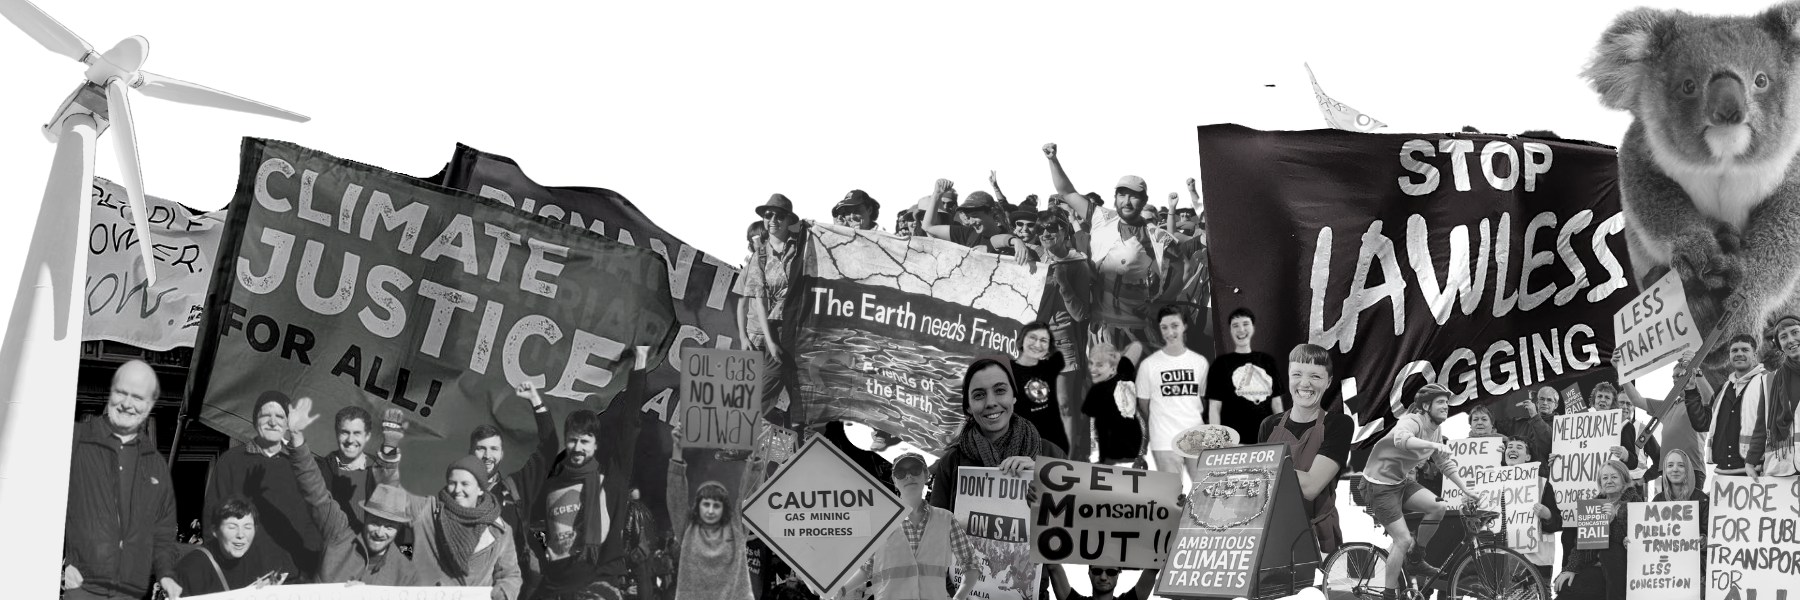 Since 1974, we have defended and protected forests and waterways, stood as allies in the struggles for First Nations' self determination and land rights, opposed uranium mining, protested the destruction of war and kept fossil fuels in the ground.